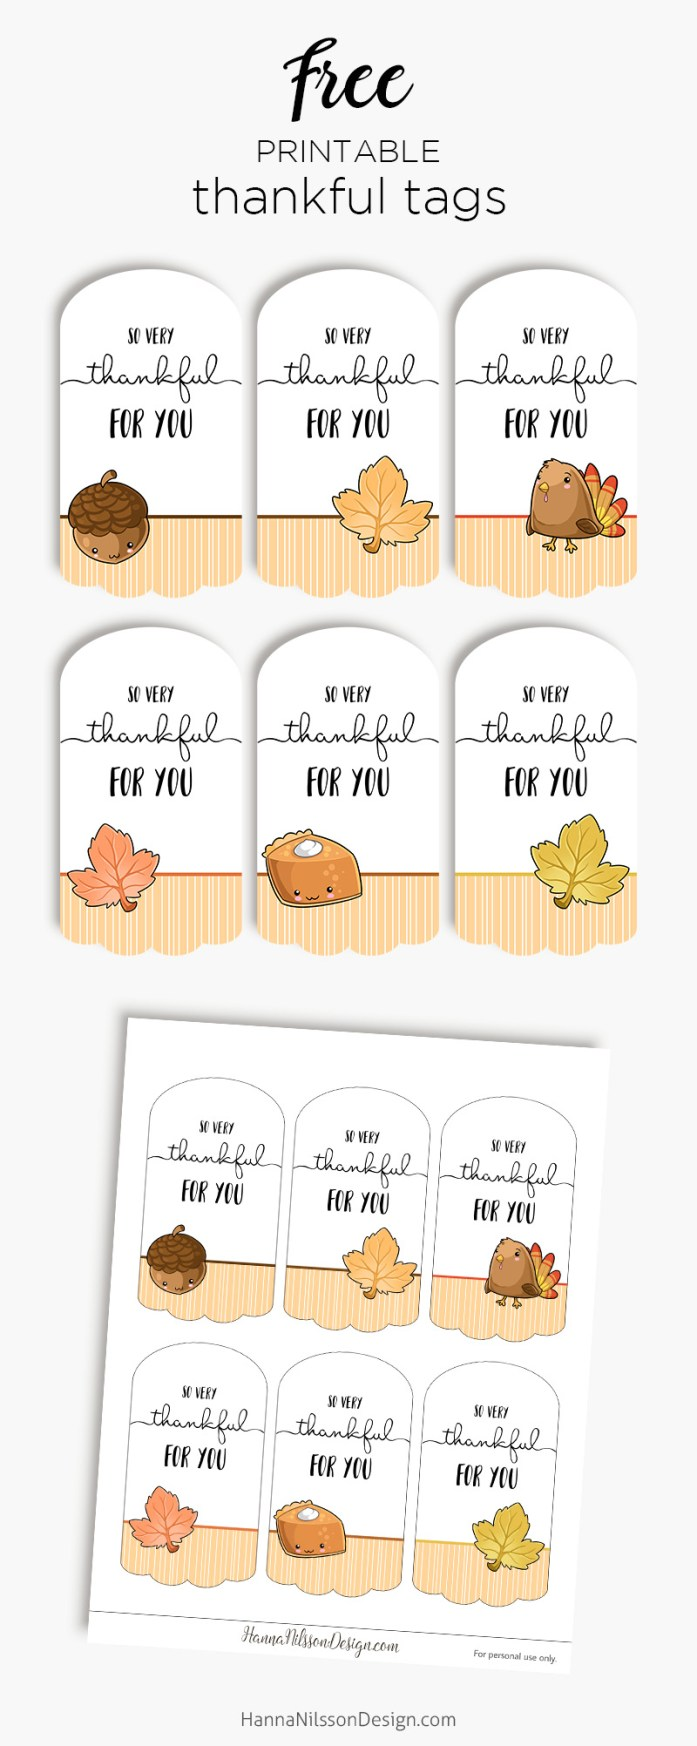 Thankful For You Tags Free Printable Tags For Thanksgiving Gifts Treats Or Decoration Hanna Nilsson Design